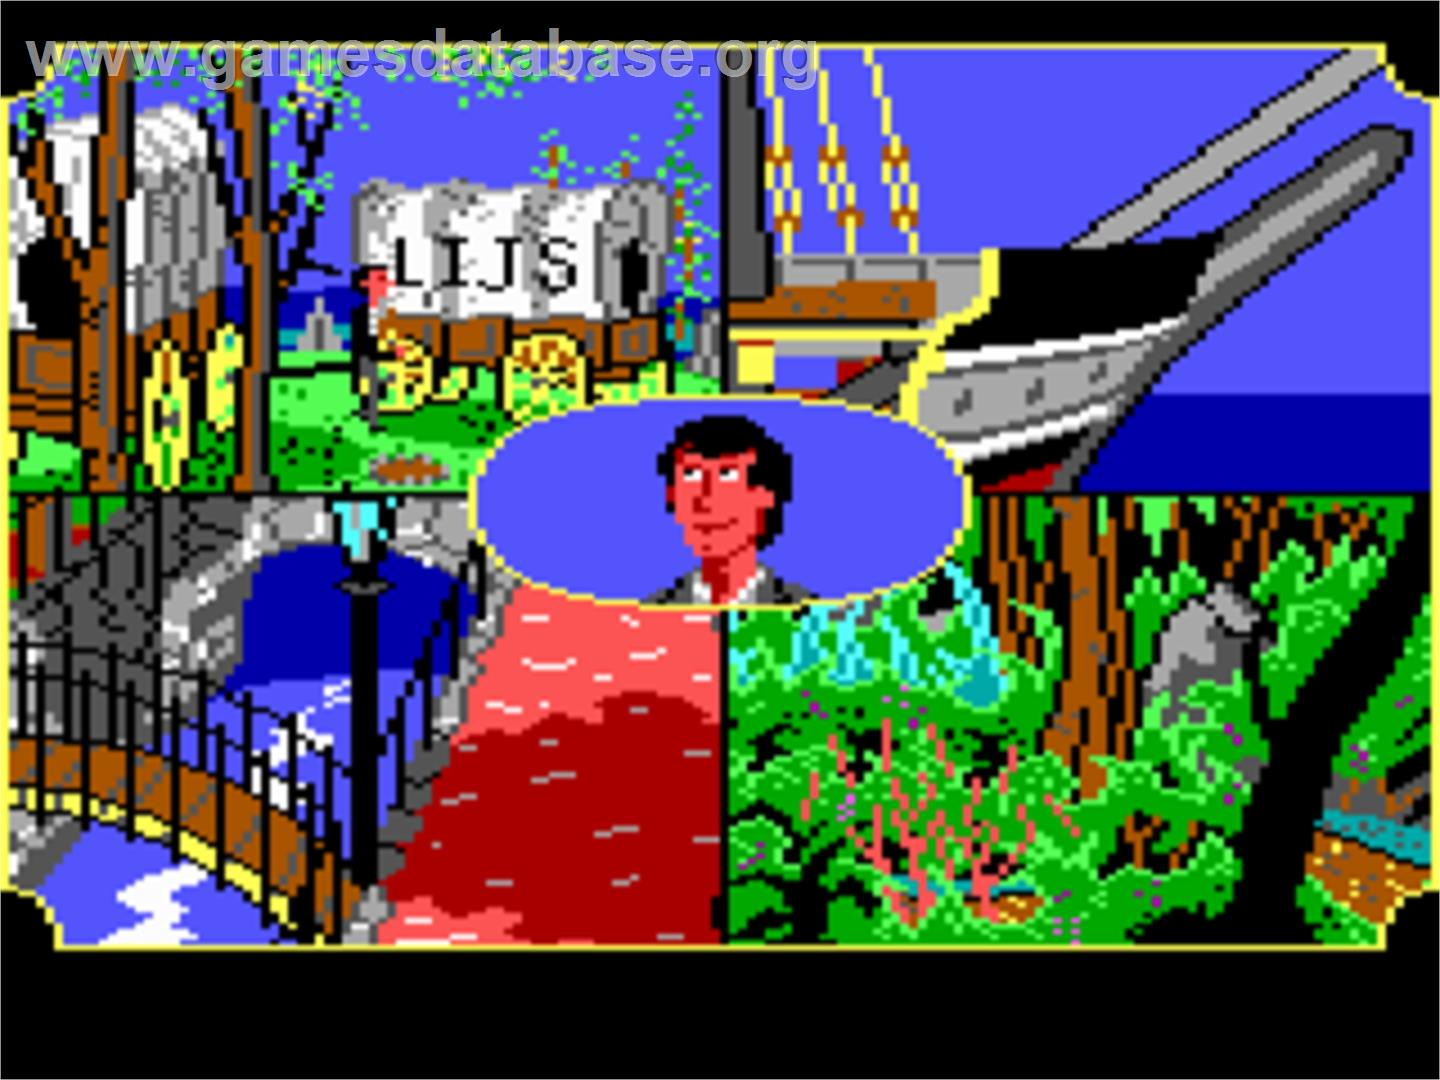 sierra games images reverse search